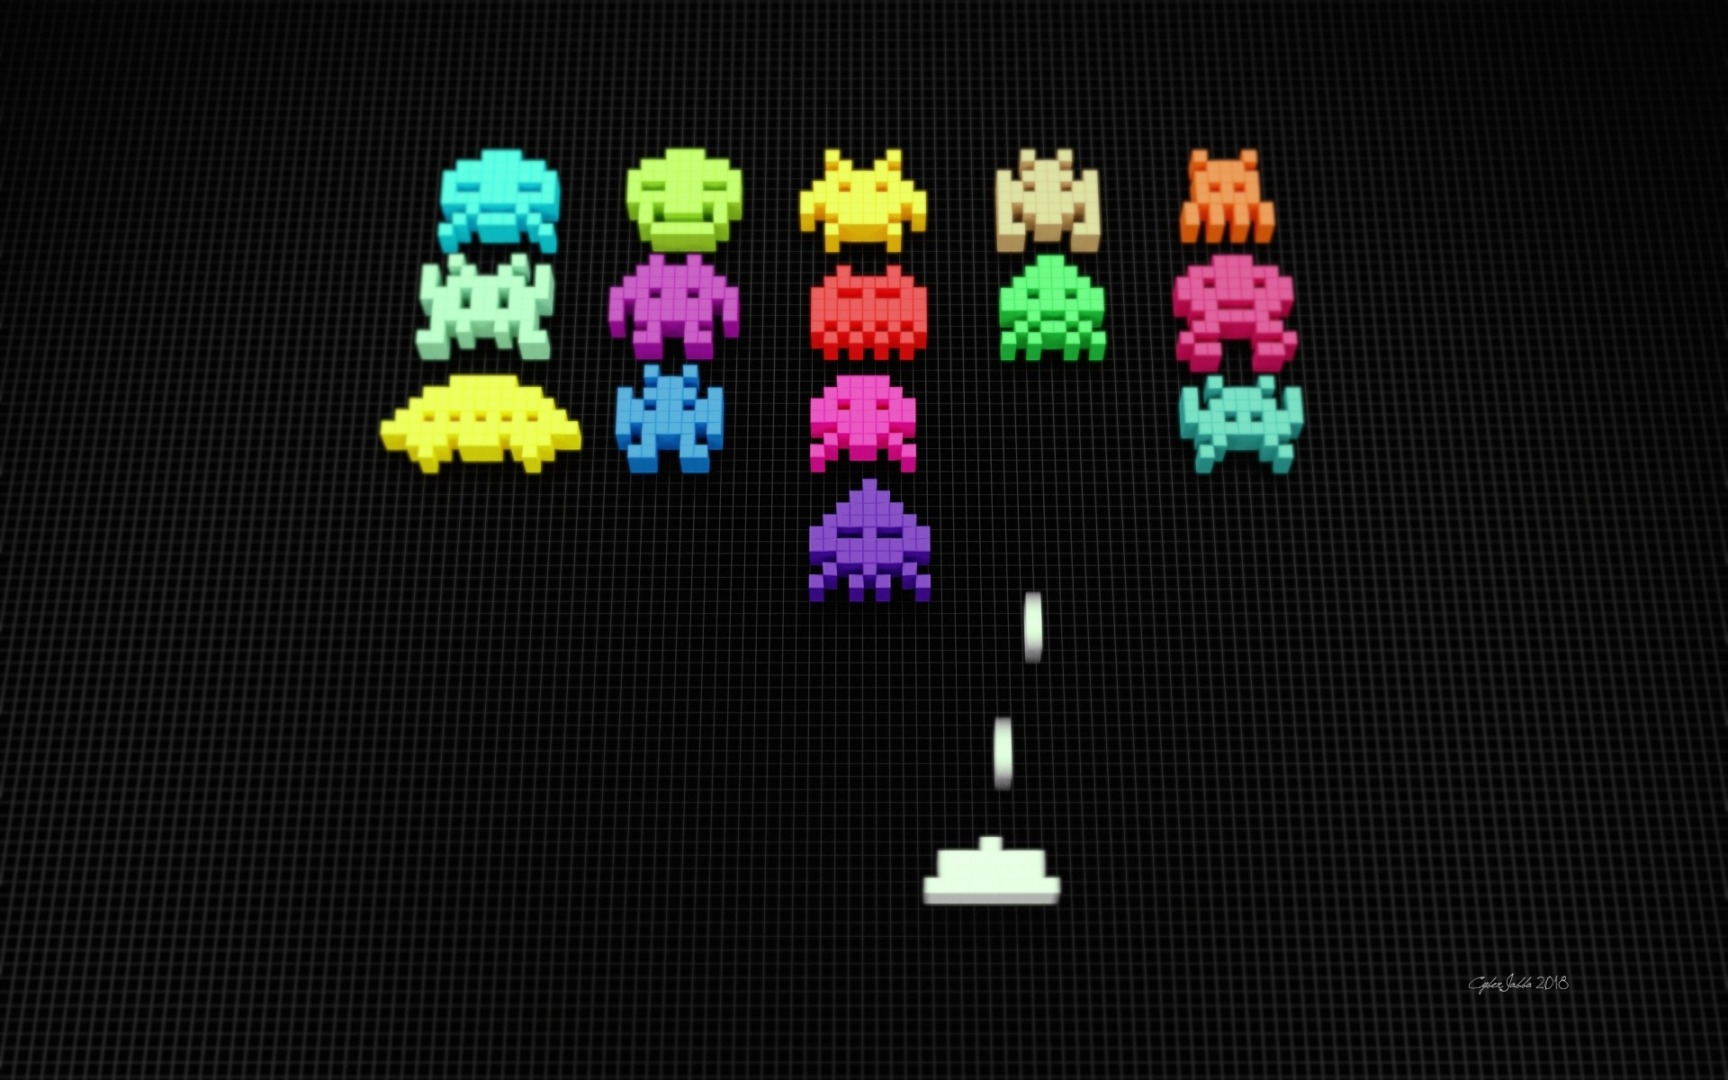 spaceinvaders-wallpaper